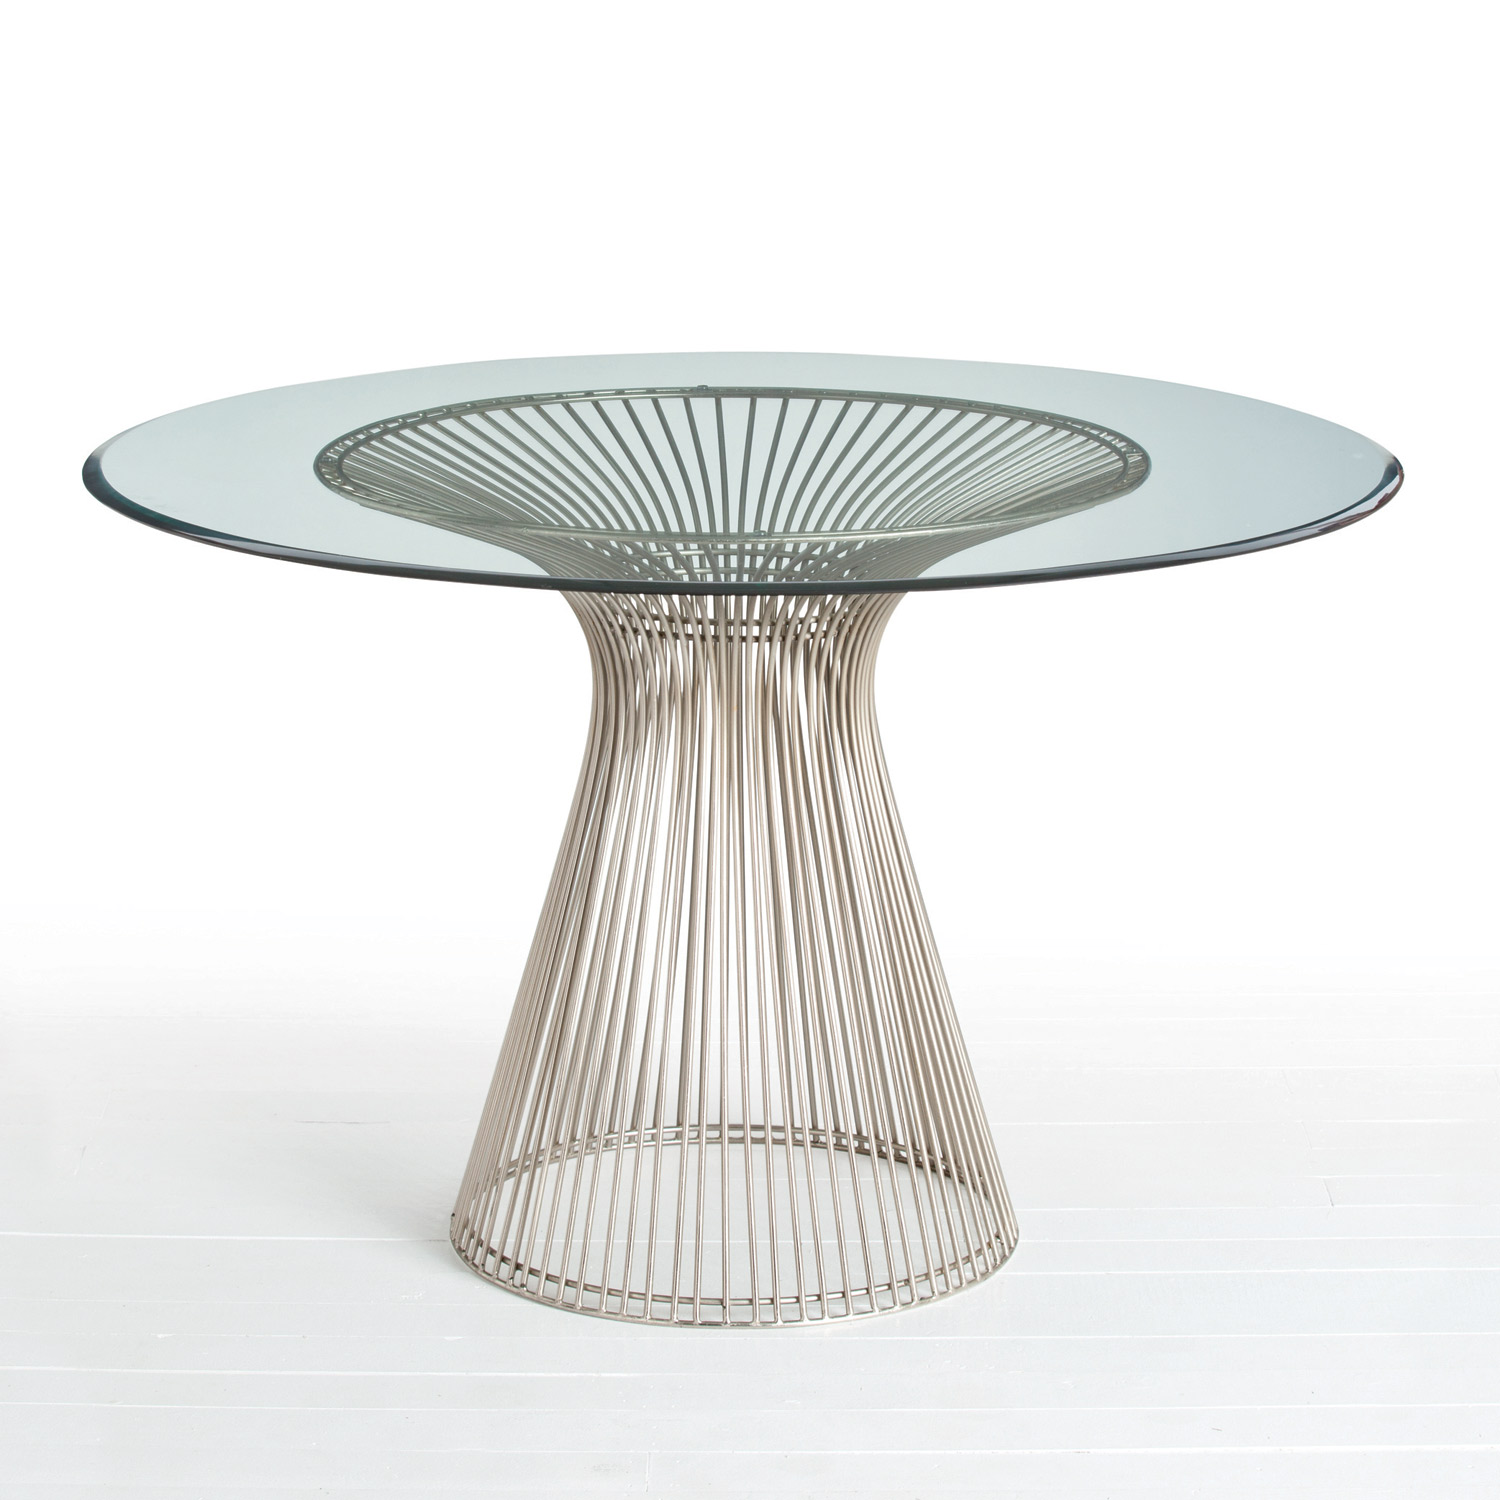 Pedestals for Tables Ideas HomesFeed : Awesome Pedestals For Glass Tables from homesfeed.com size 1500 x 1500 jpeg 266kB